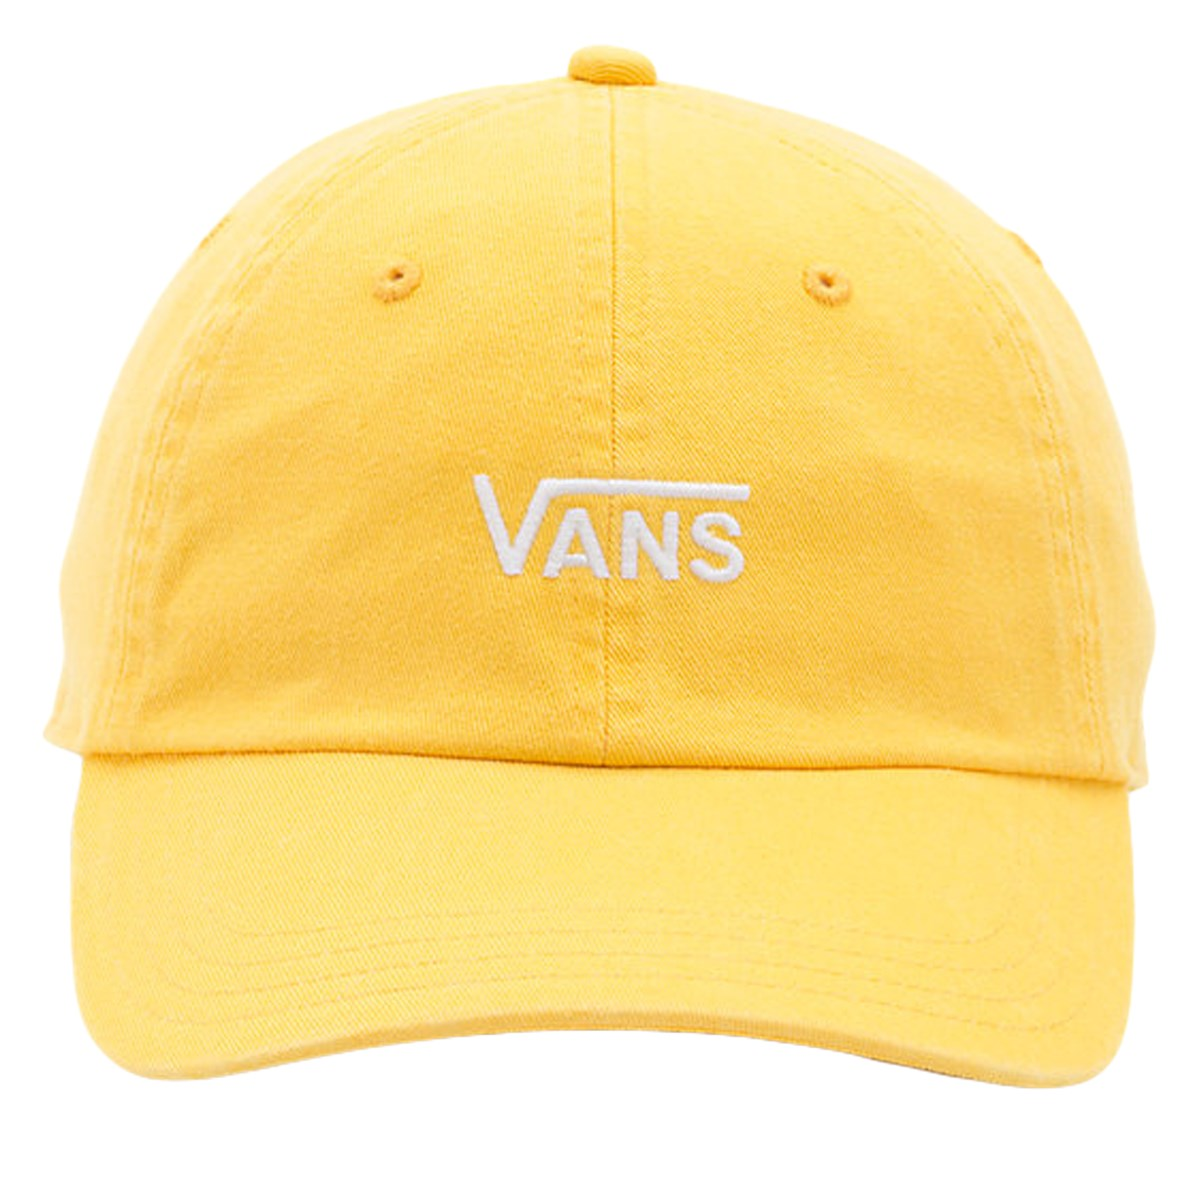 Court Side Hat in Yellow